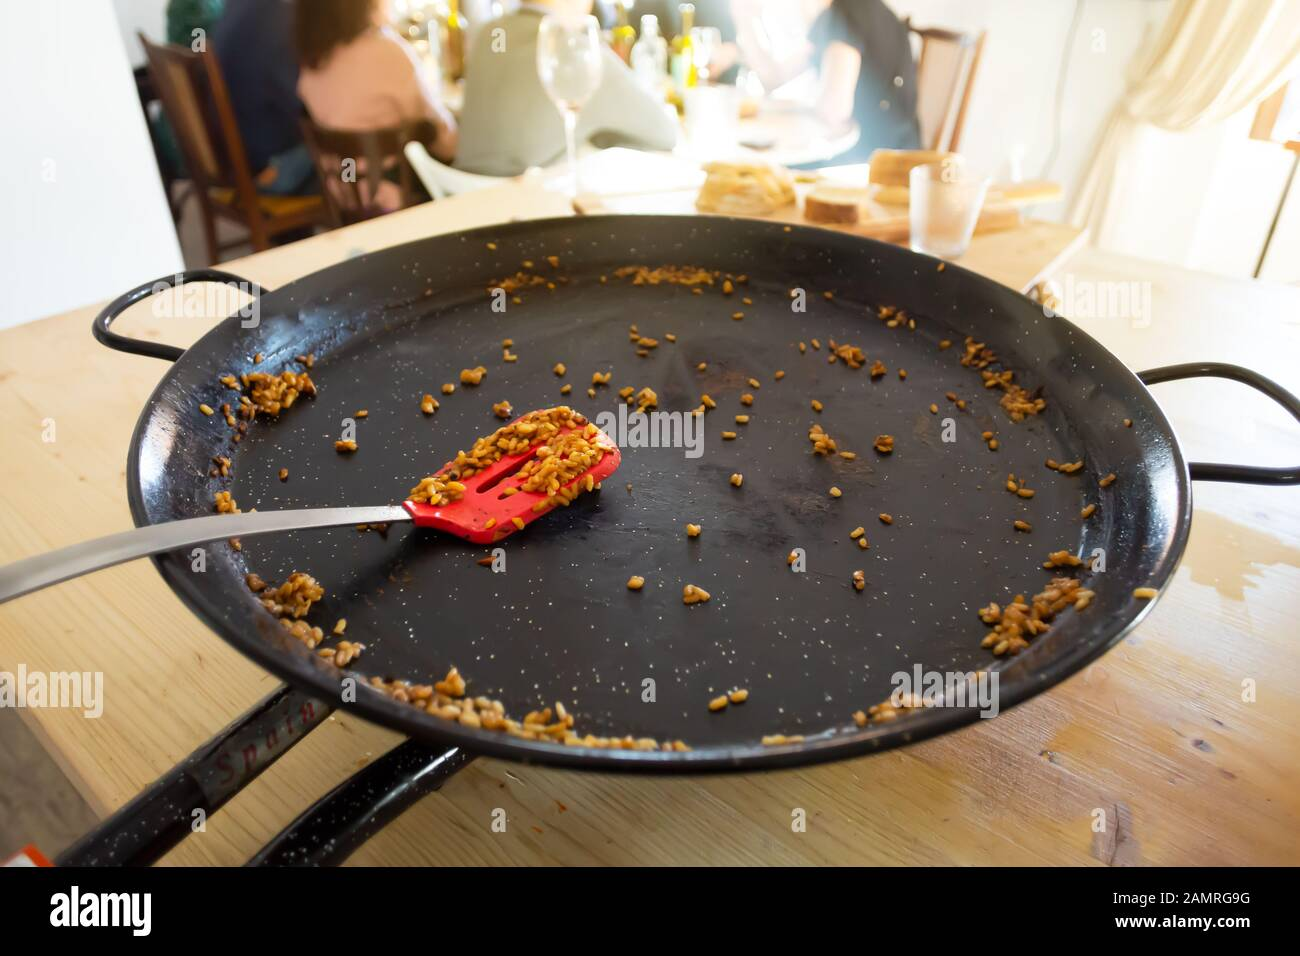 Empty Paella pan with traditional Spanish food usually prepared with rice, meat, seafood Stock Photo